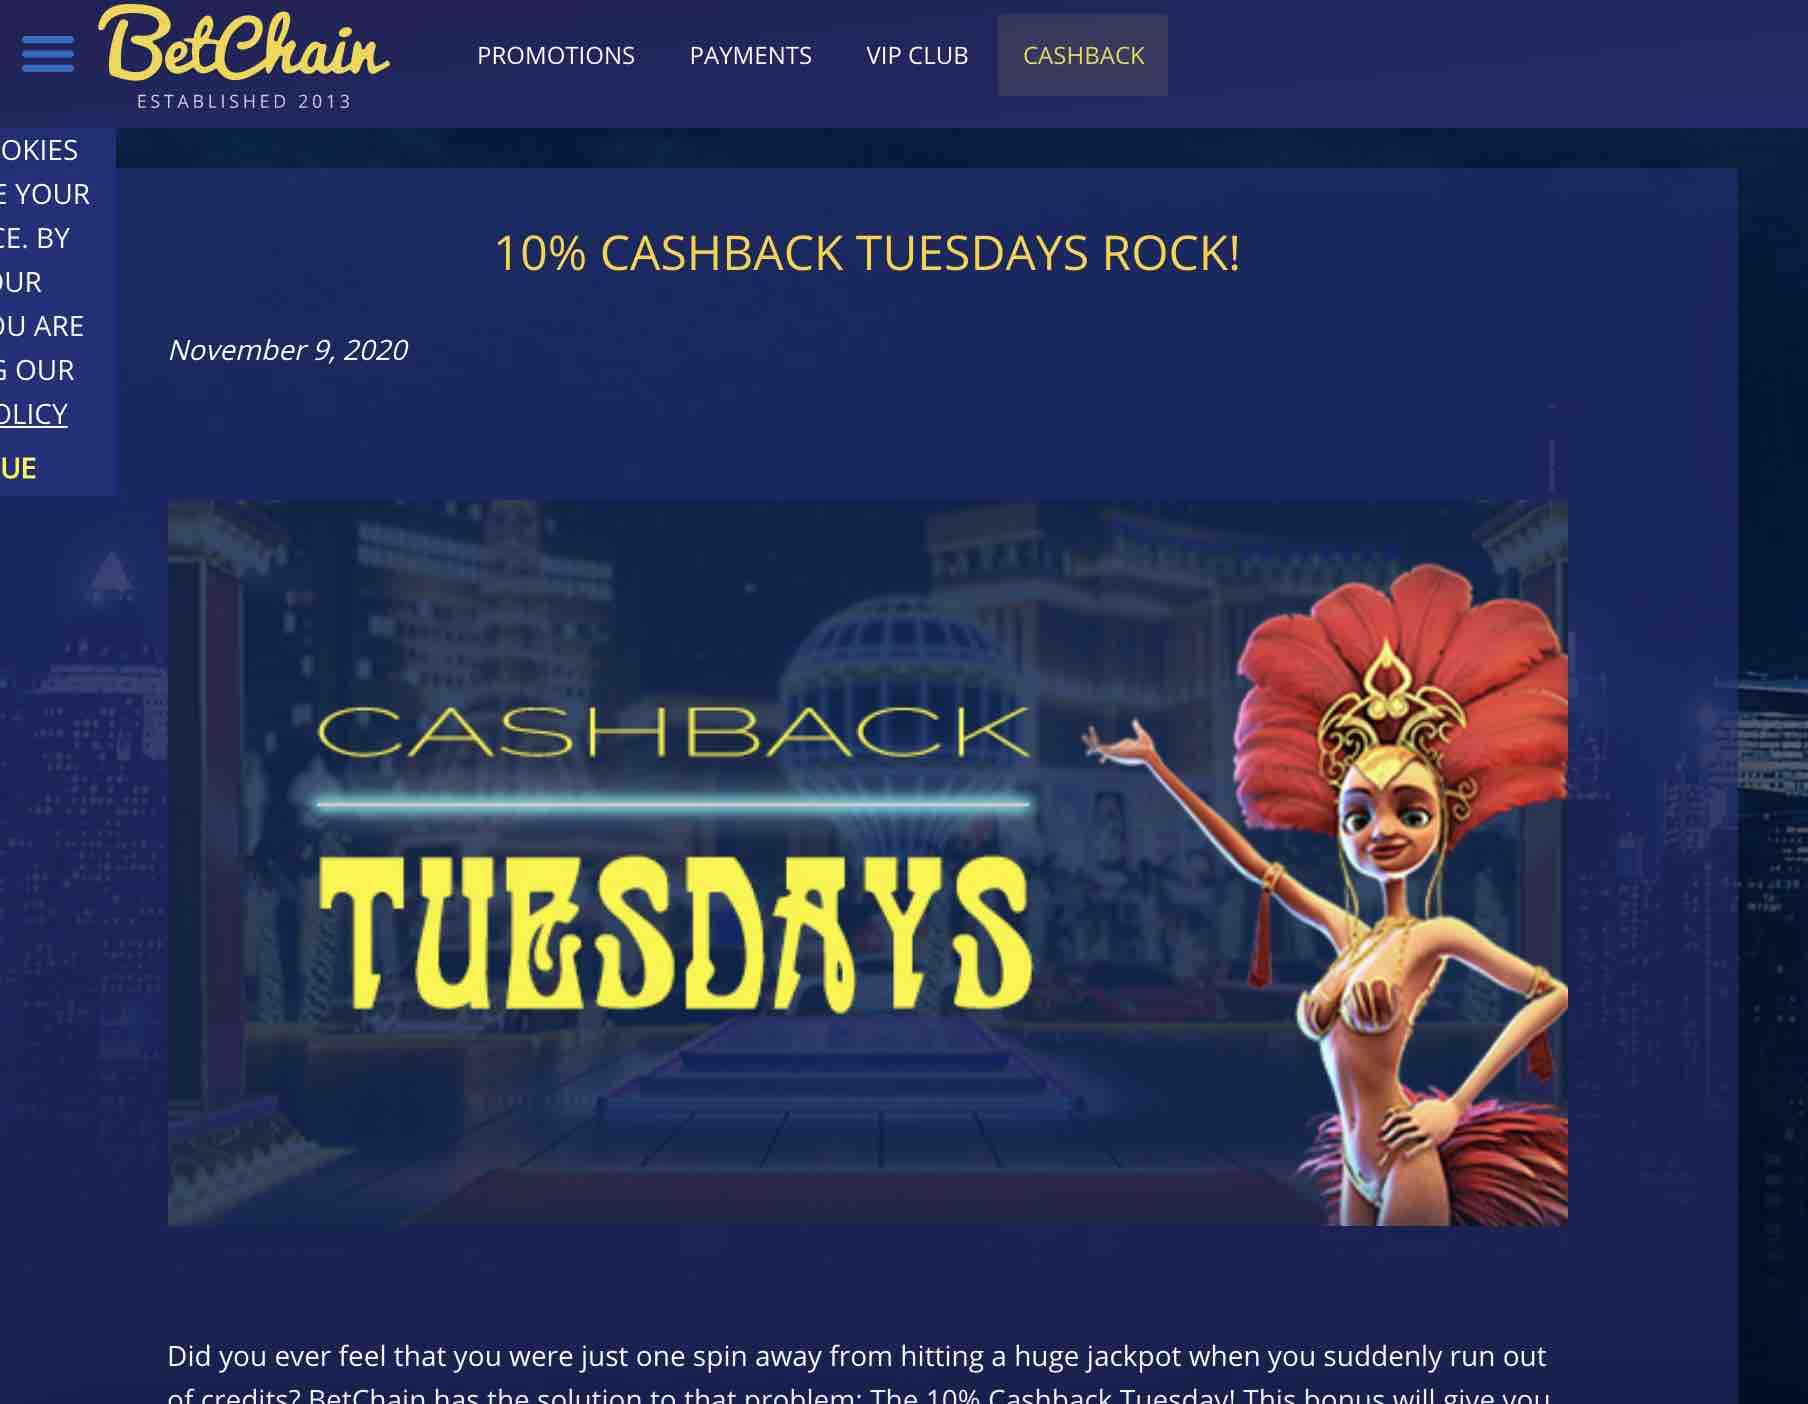 Cashback Offers at BetChain Casino